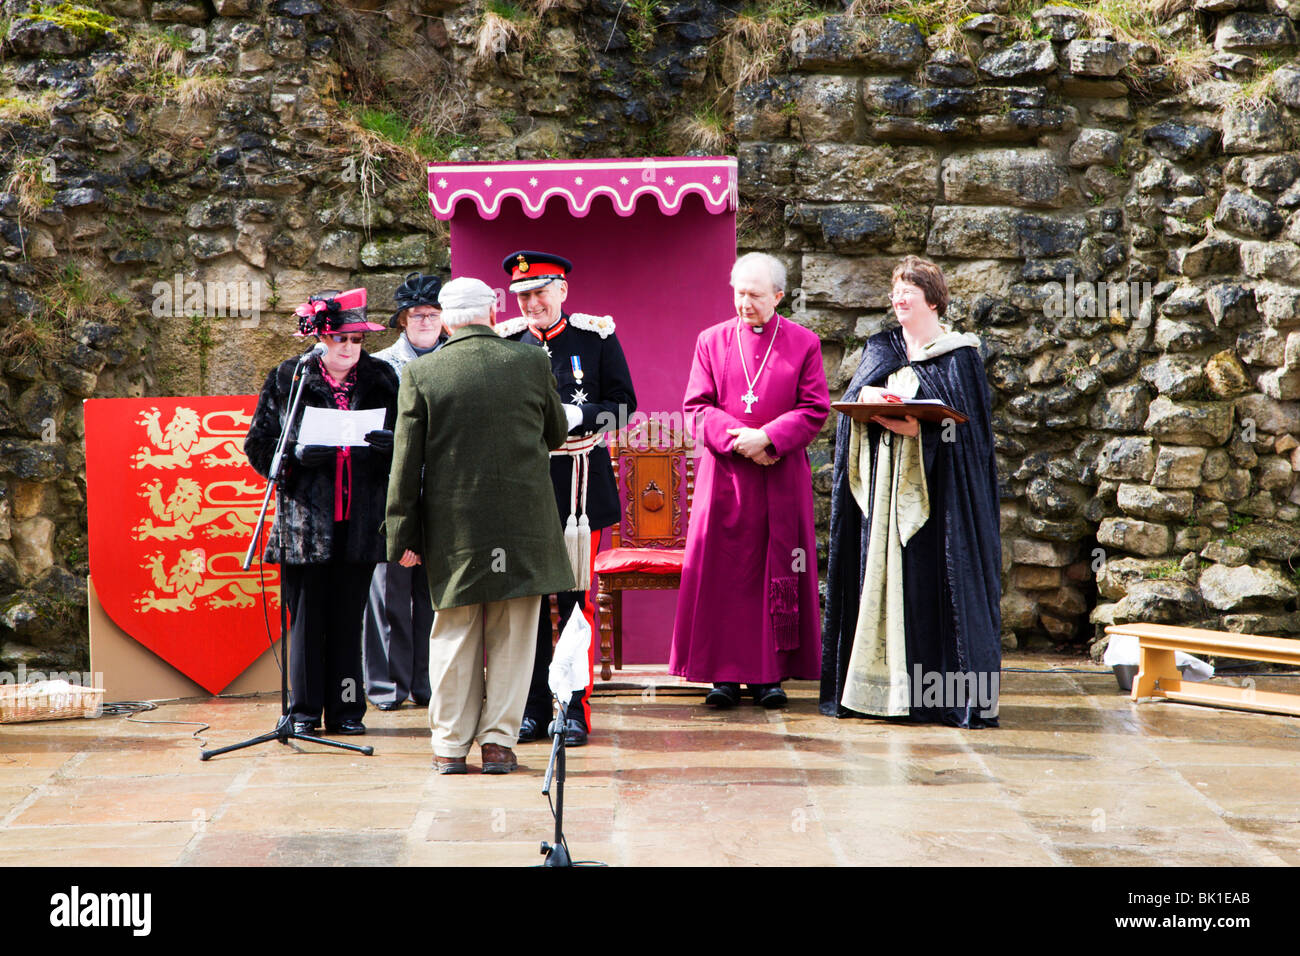 Distribution of the Knaresborough Maundy specially designed coin to 13 residents at Knaresborough Castle - Stock Image